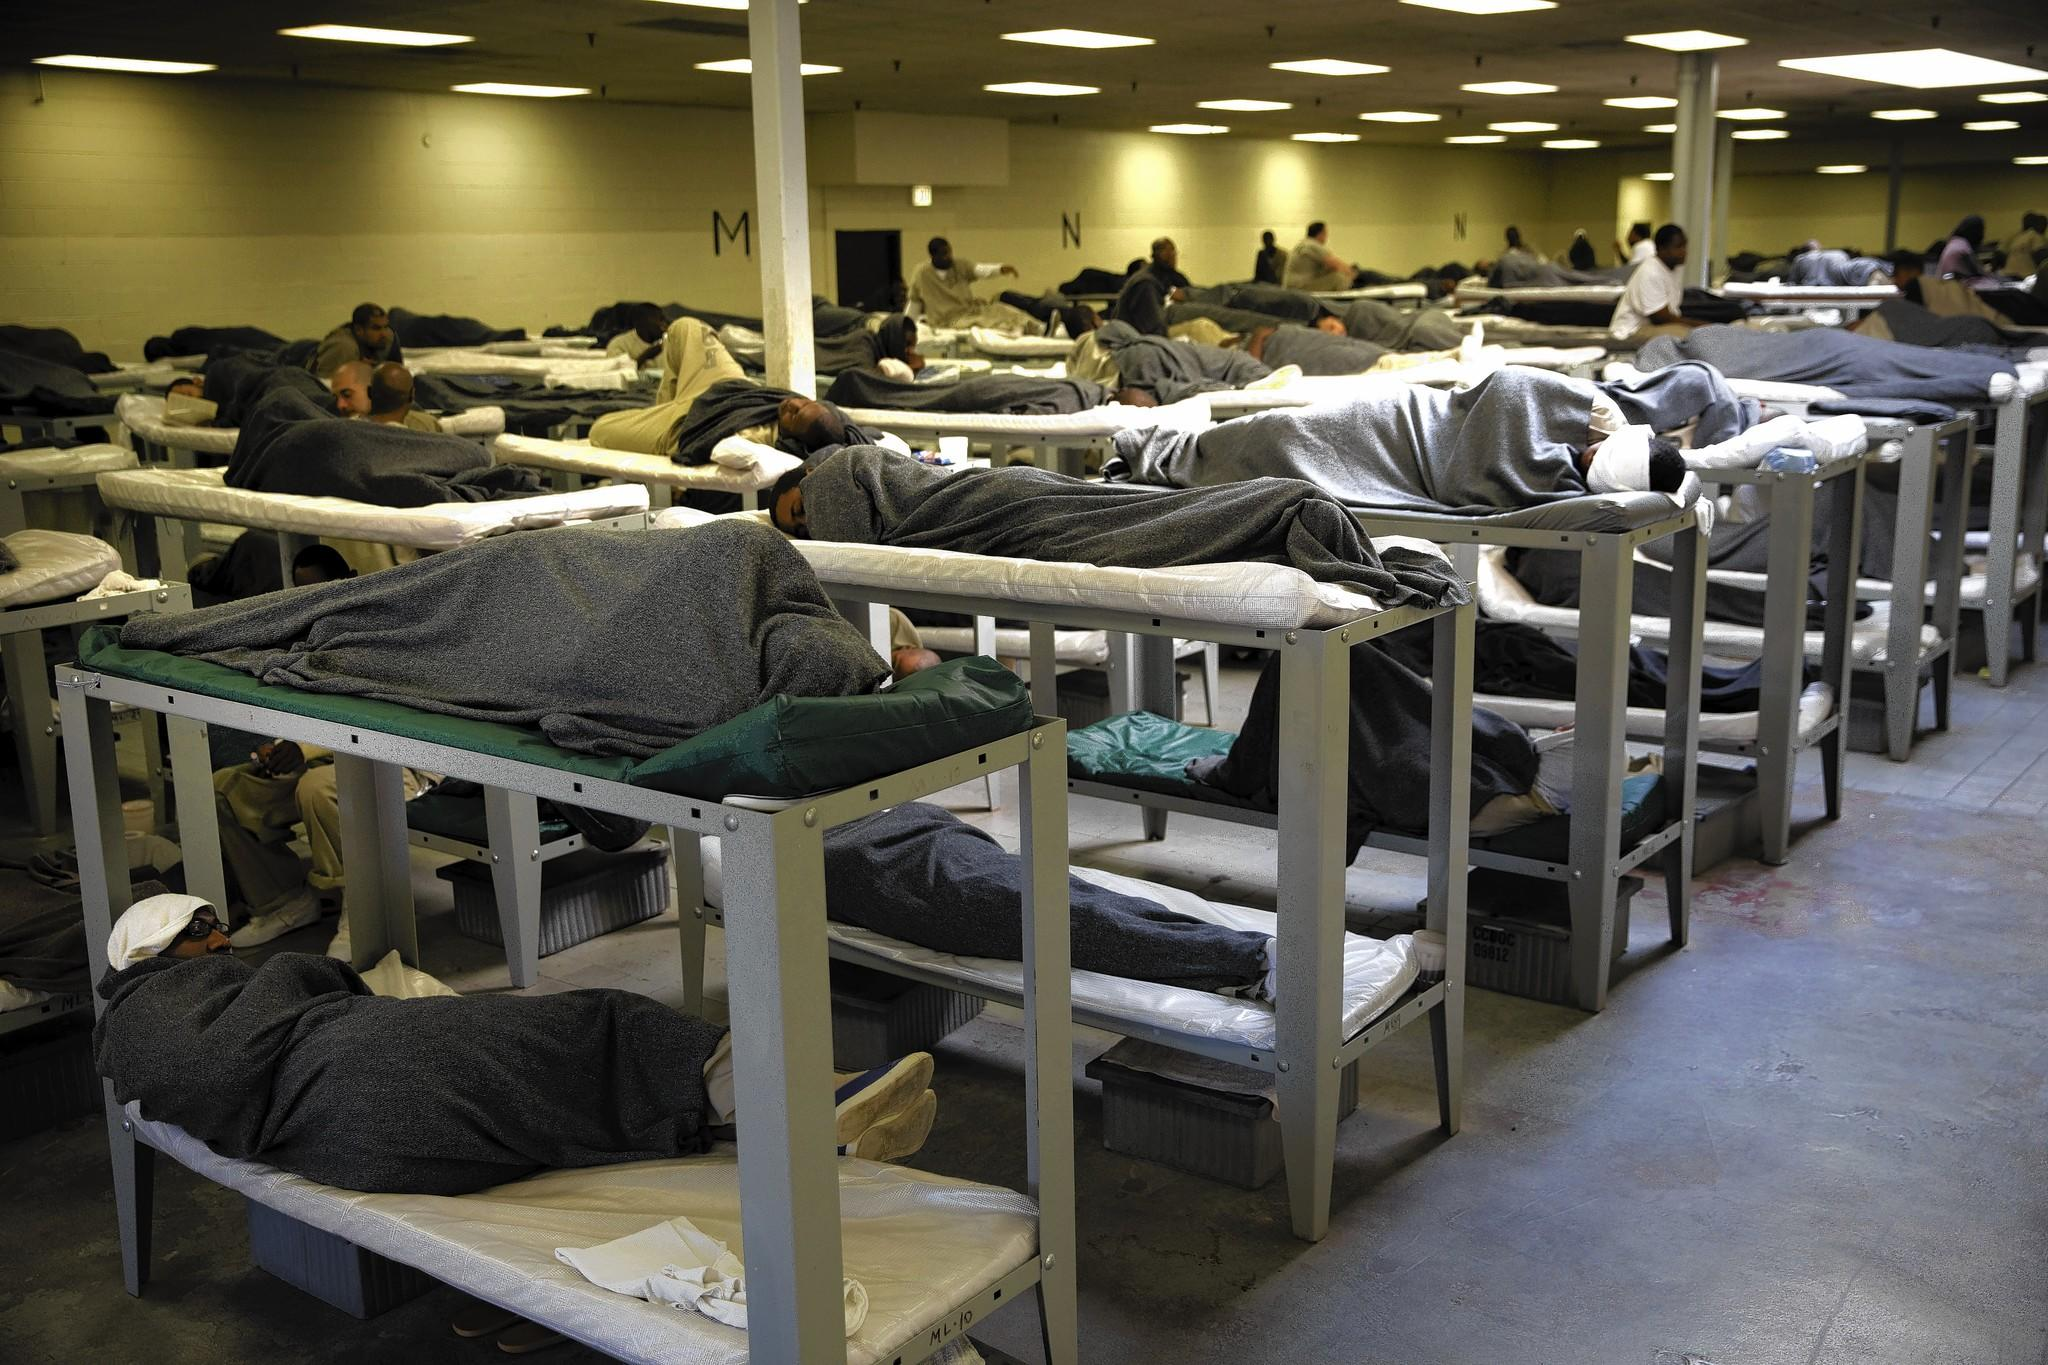 Hundreds of inmates sleep together on bunks in a large room of the Cook County Jail.